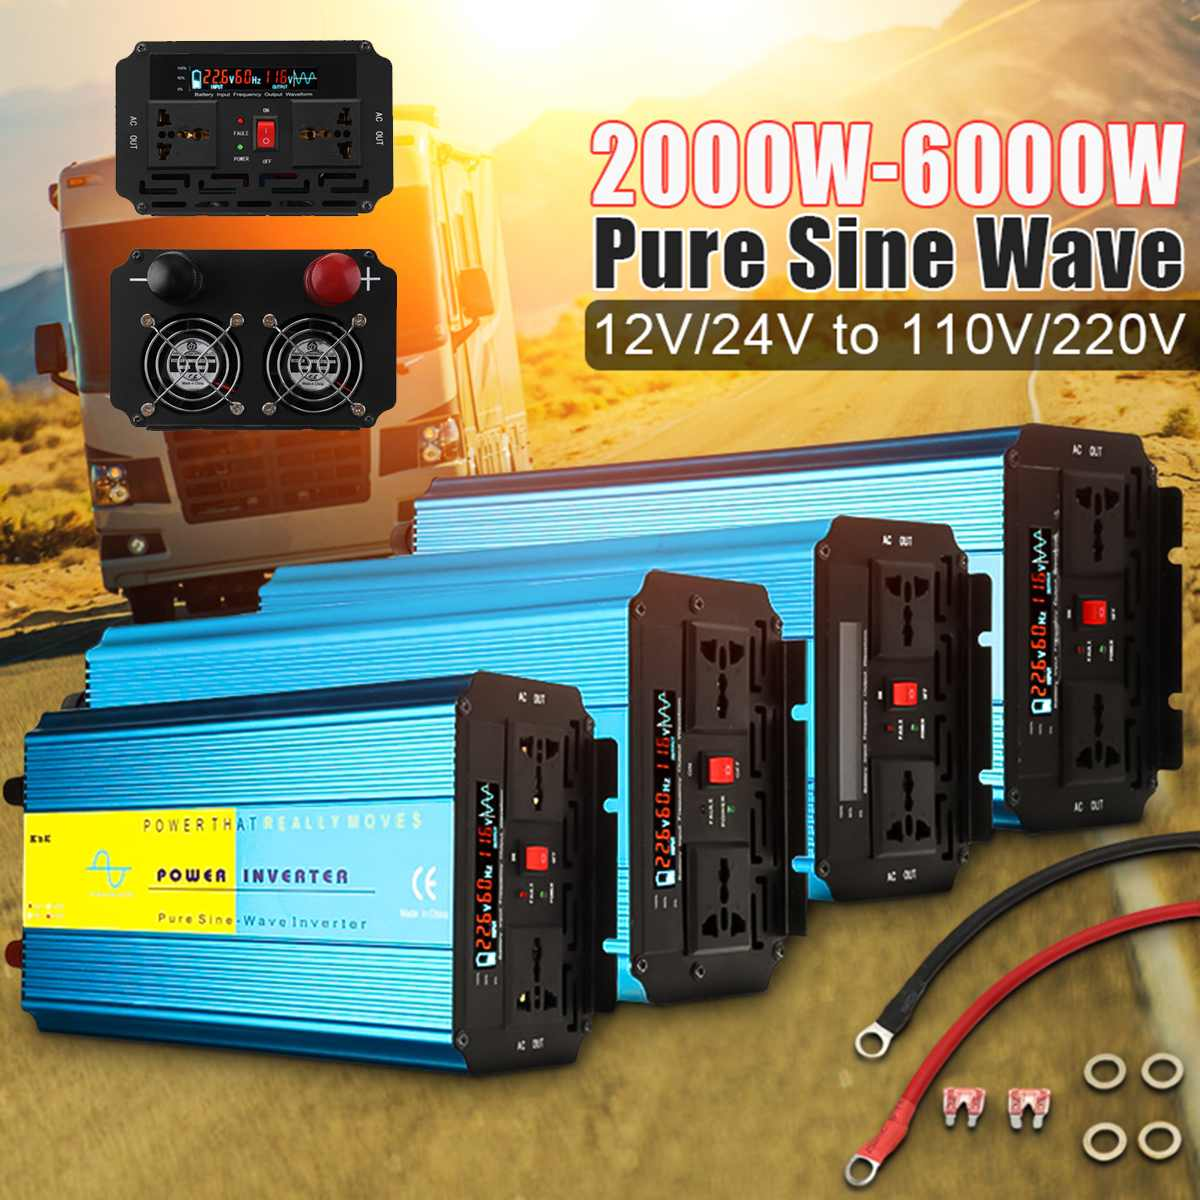 Pure Sine Wave Solar Power <font><b>Inverter</b></font> <font><b>12V</b></font> 220V Voltage Transformer Converter 5000W <font><b>4000W</b></font> 3000W 2000W Peak <font><b>12V</b></font> 110V 60Hz <font><b>Inverter</b></font> image